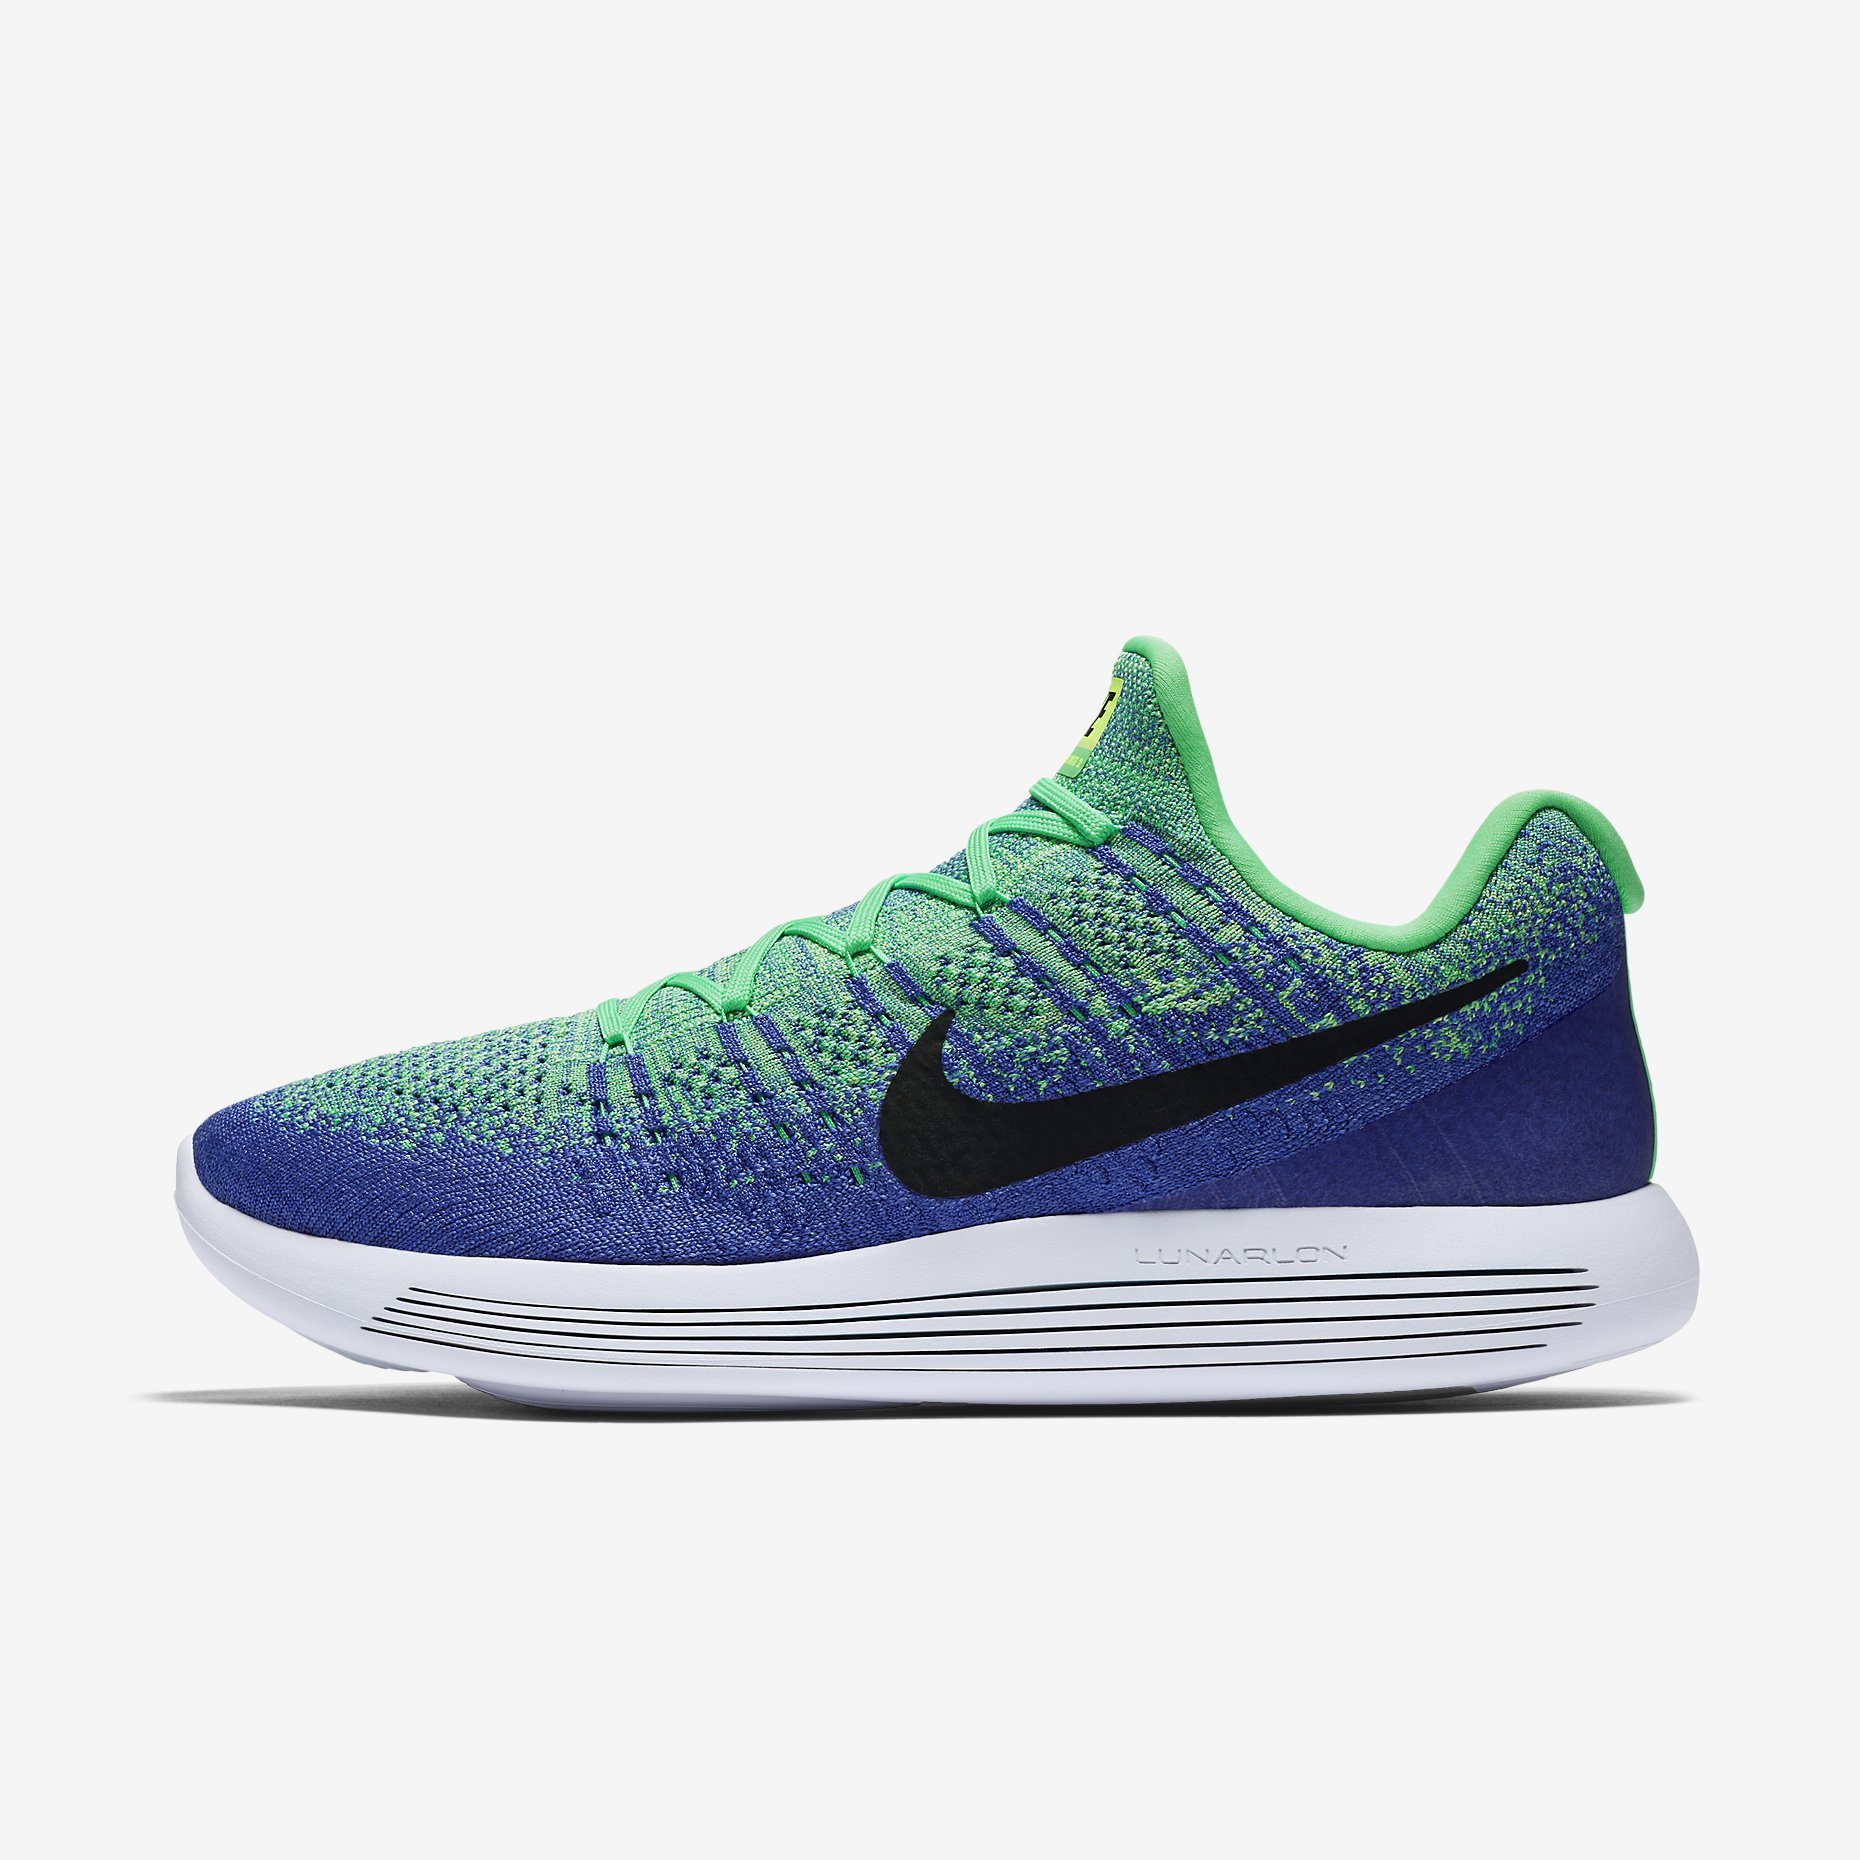 online retailer 1eb6a 83e7e Nike LunarEpic Low FlyKnit 2 Mens Running Shoes - Alton Sports